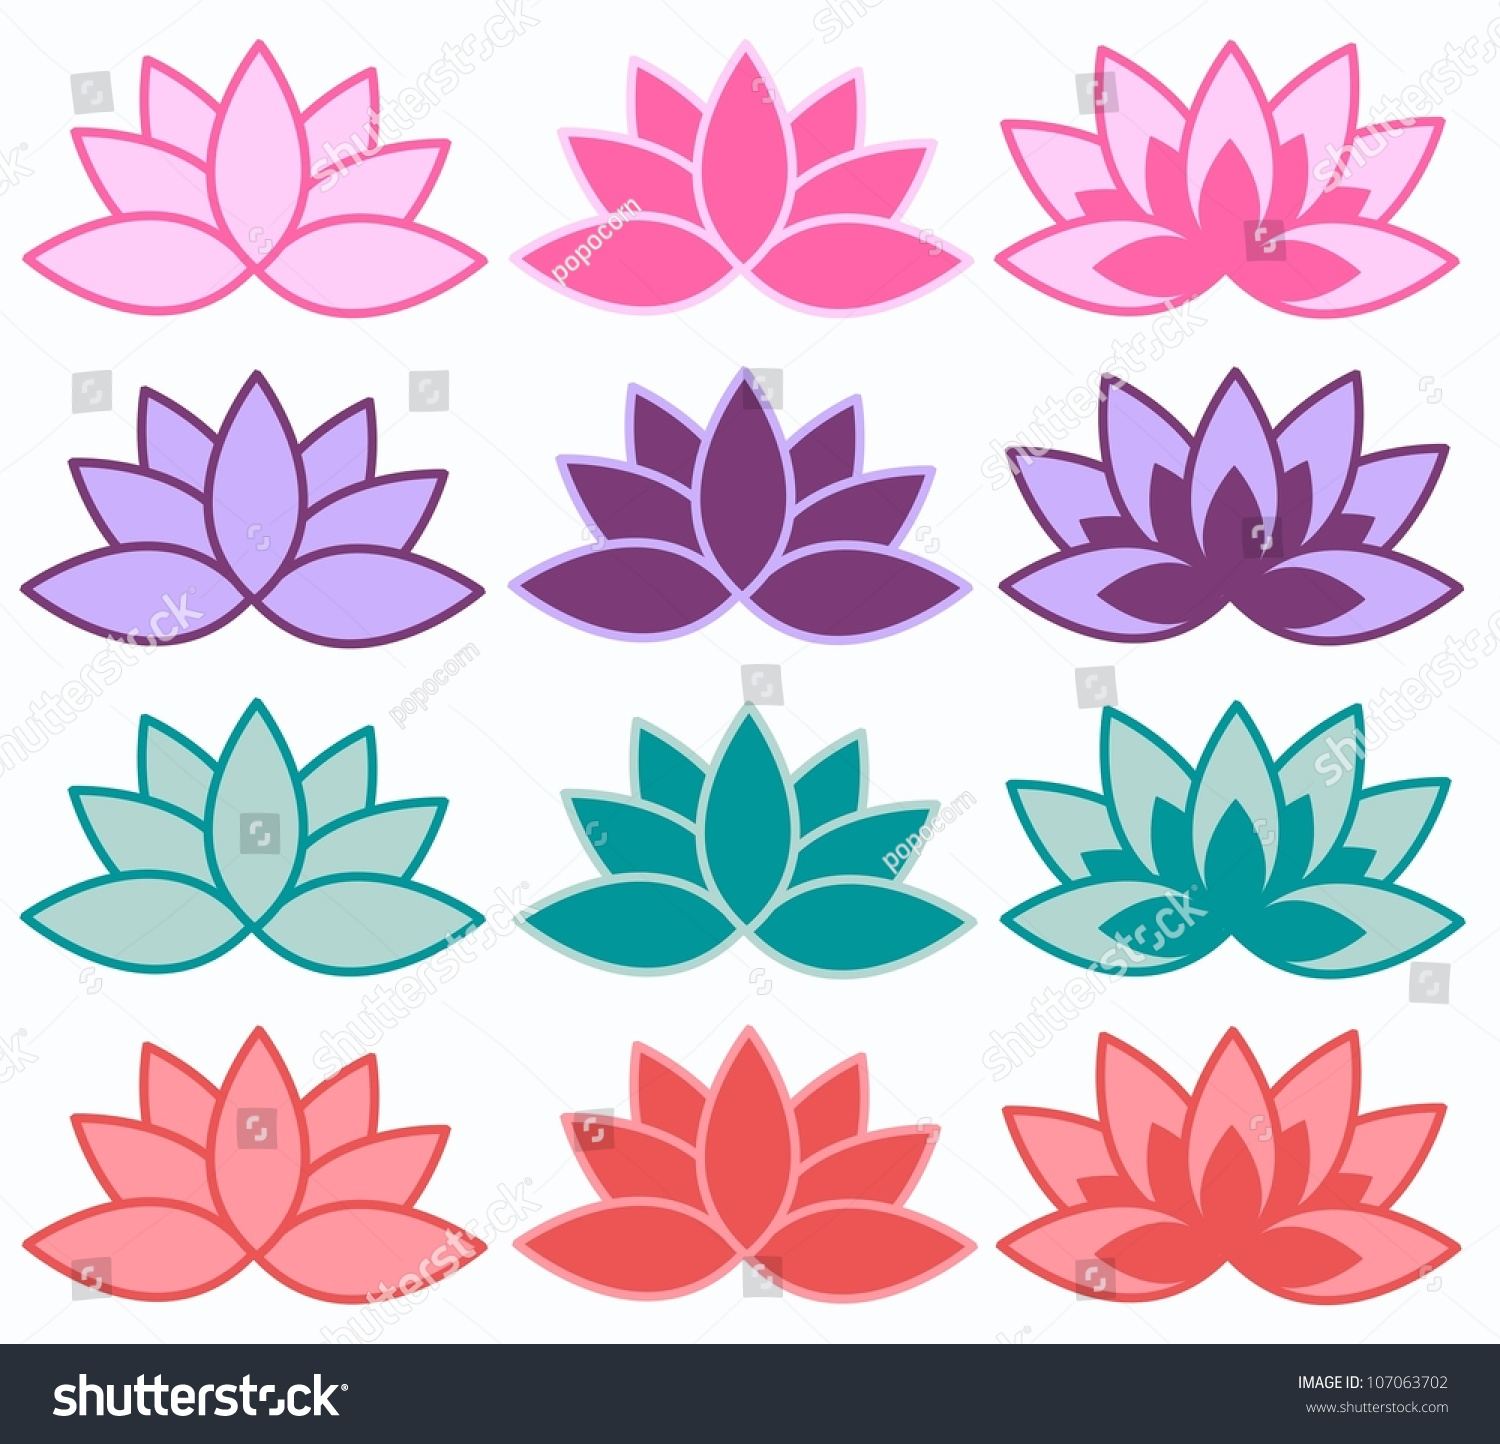 Lotus flower spa stock vector royalty free 107063702 shutterstock lotus flower spa izmirmasajfo